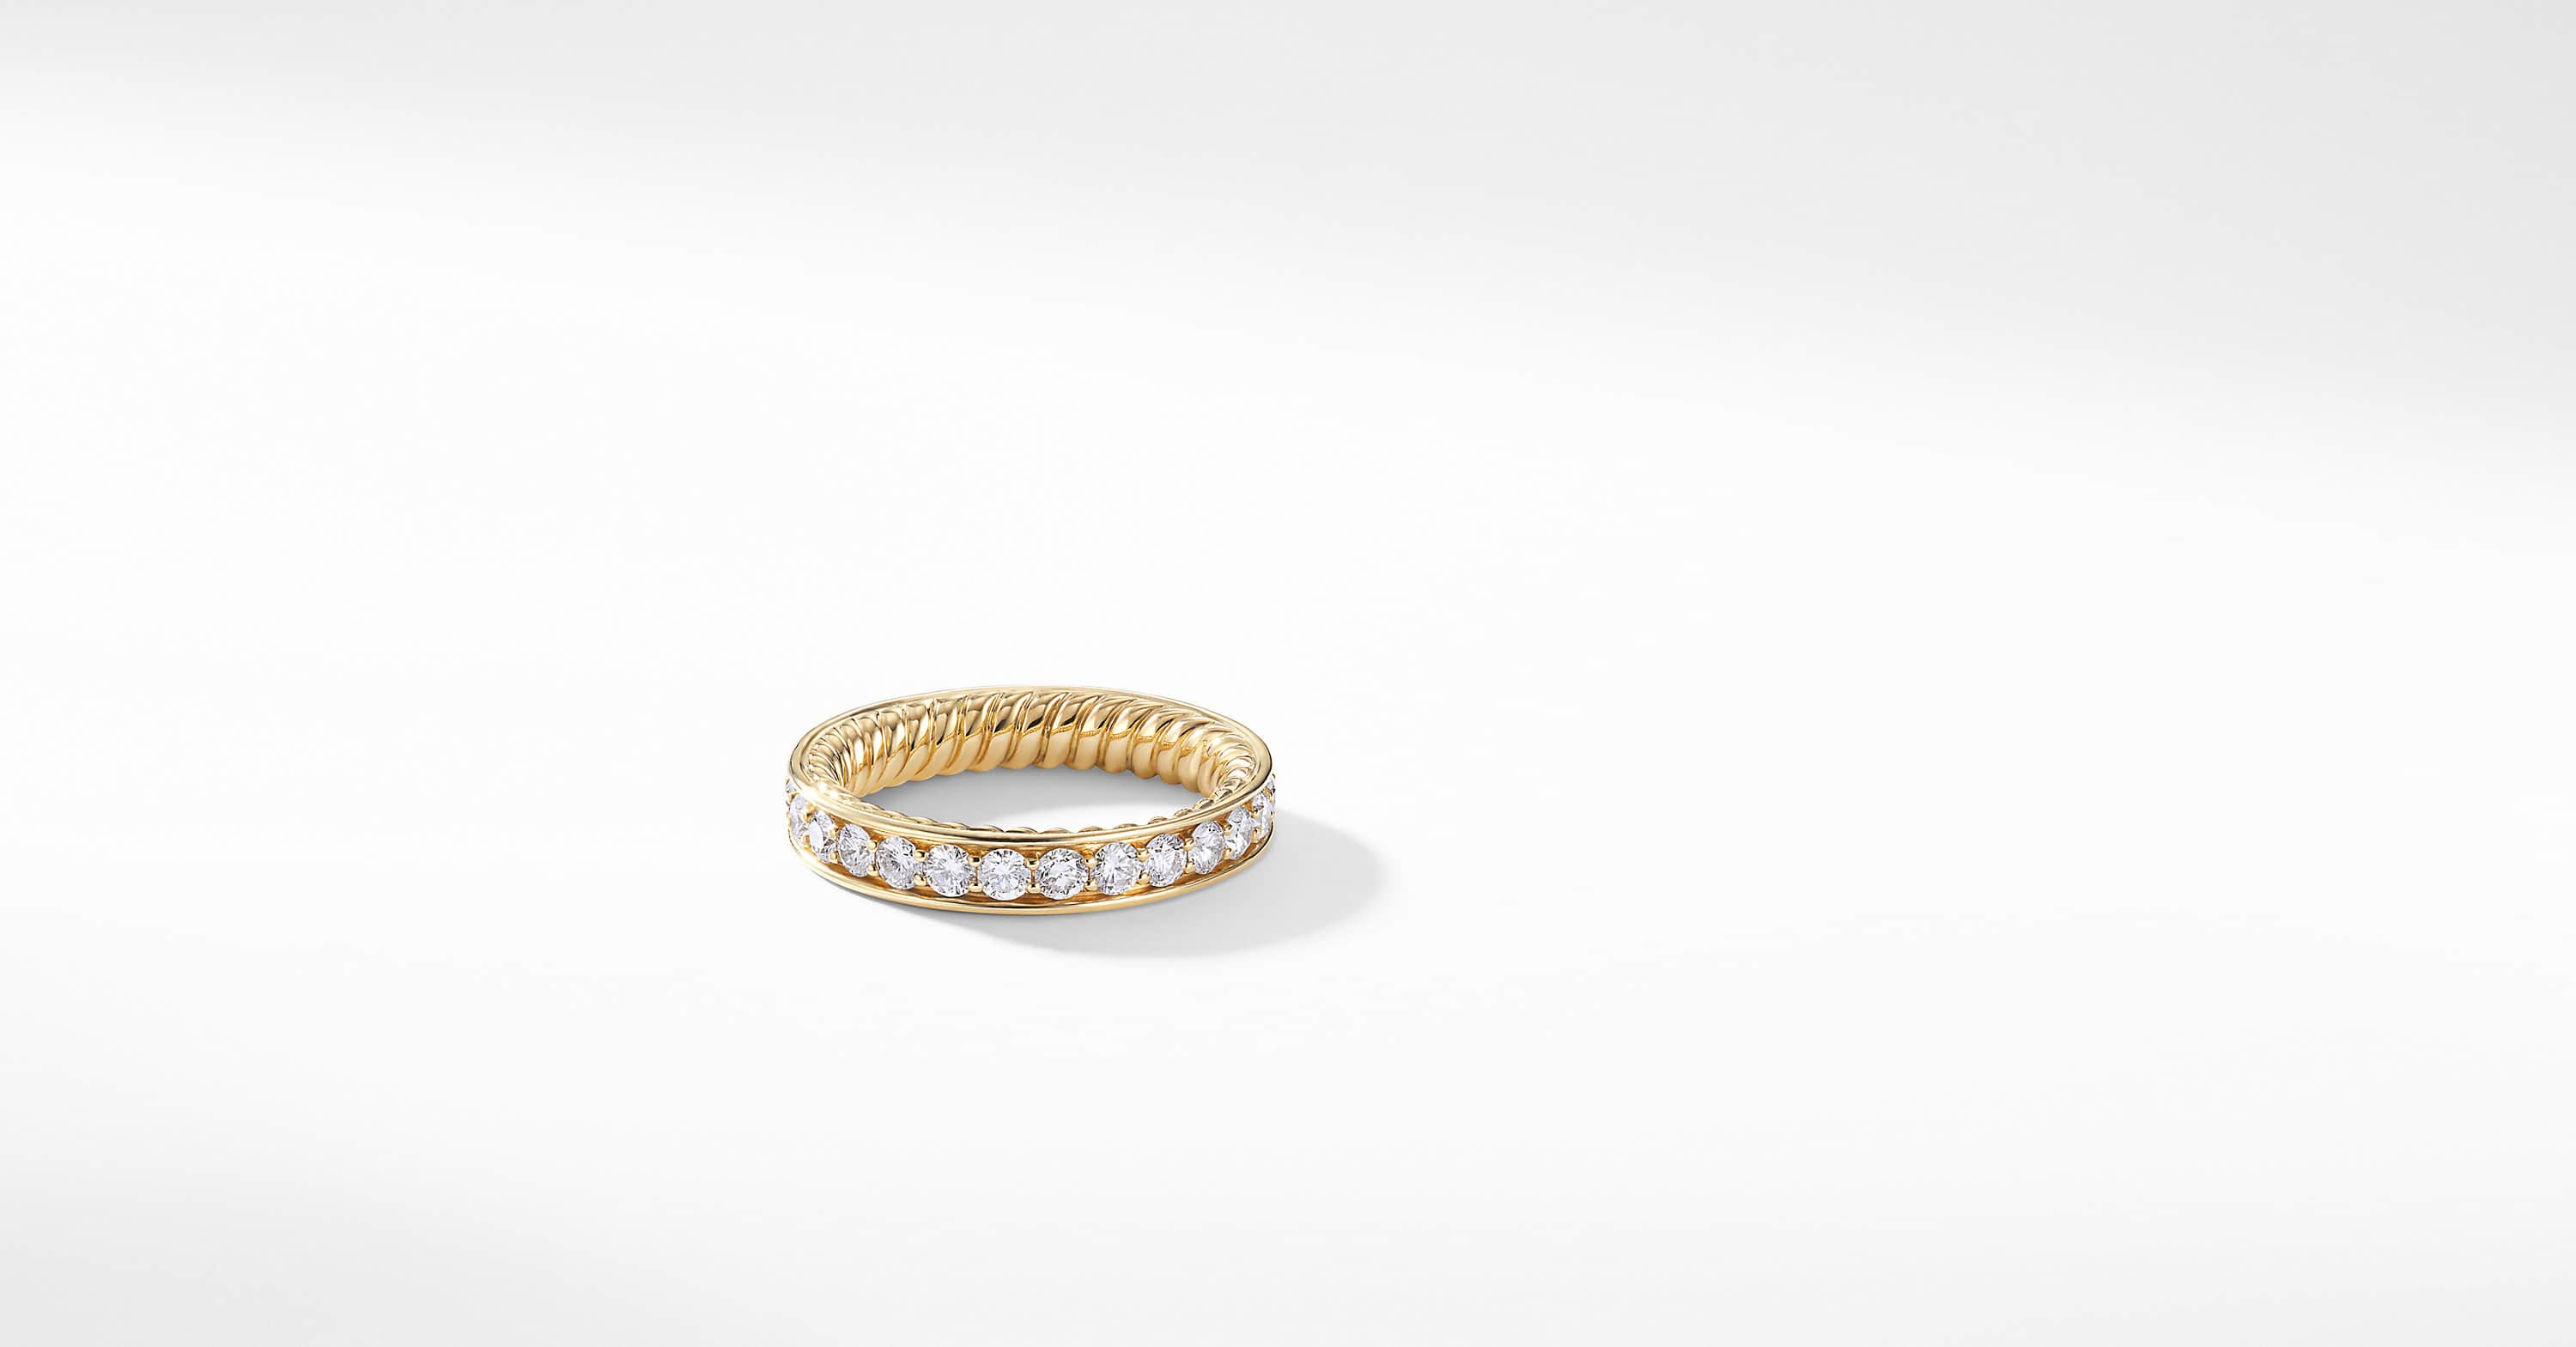 DY Eden Eternity Wedding Band with Diamonds in 18K Gold, 3.8mm